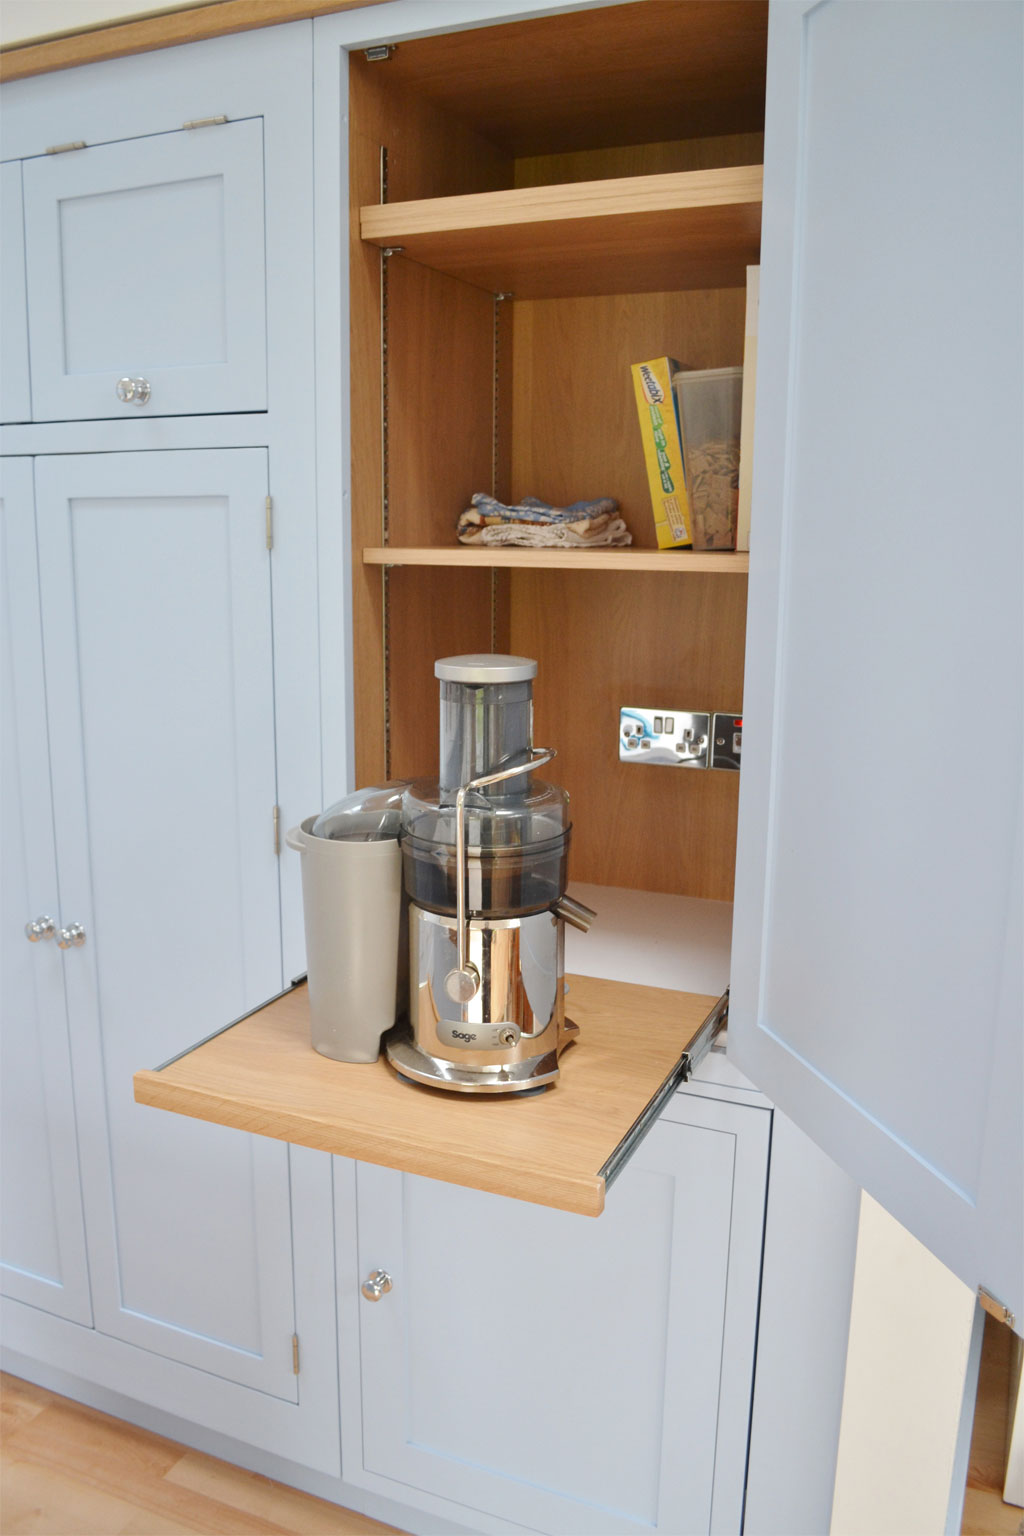 Deanery Shaker Style Kitchen Deanery Furniture